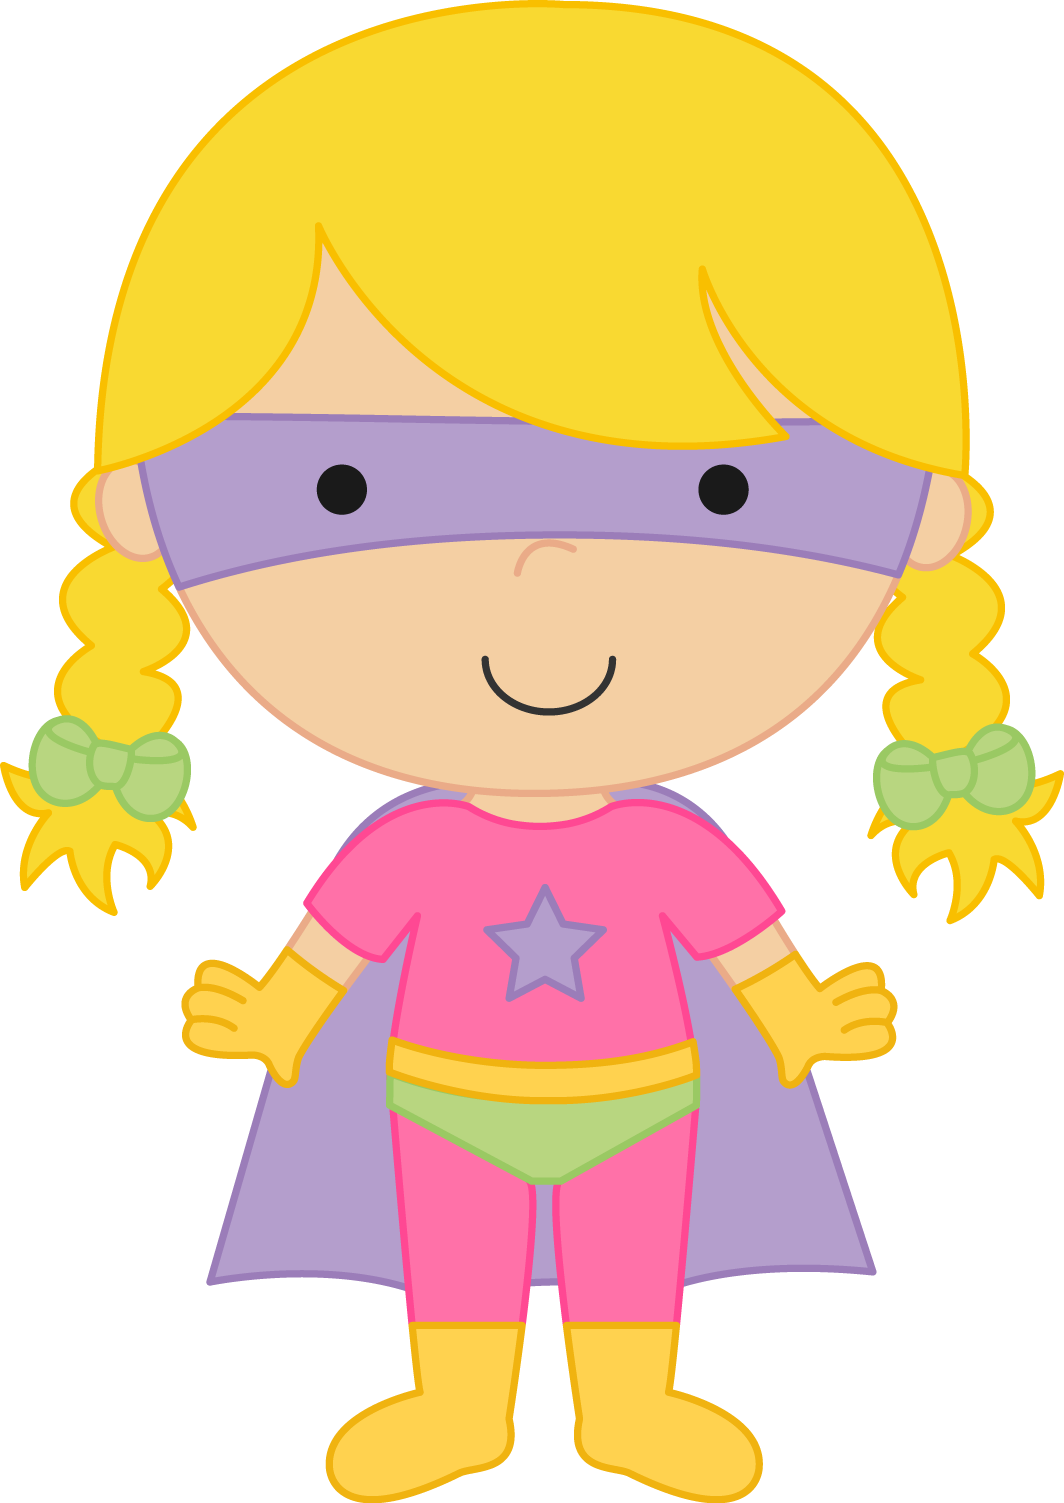 Worm clipart superhero. Girls png google search